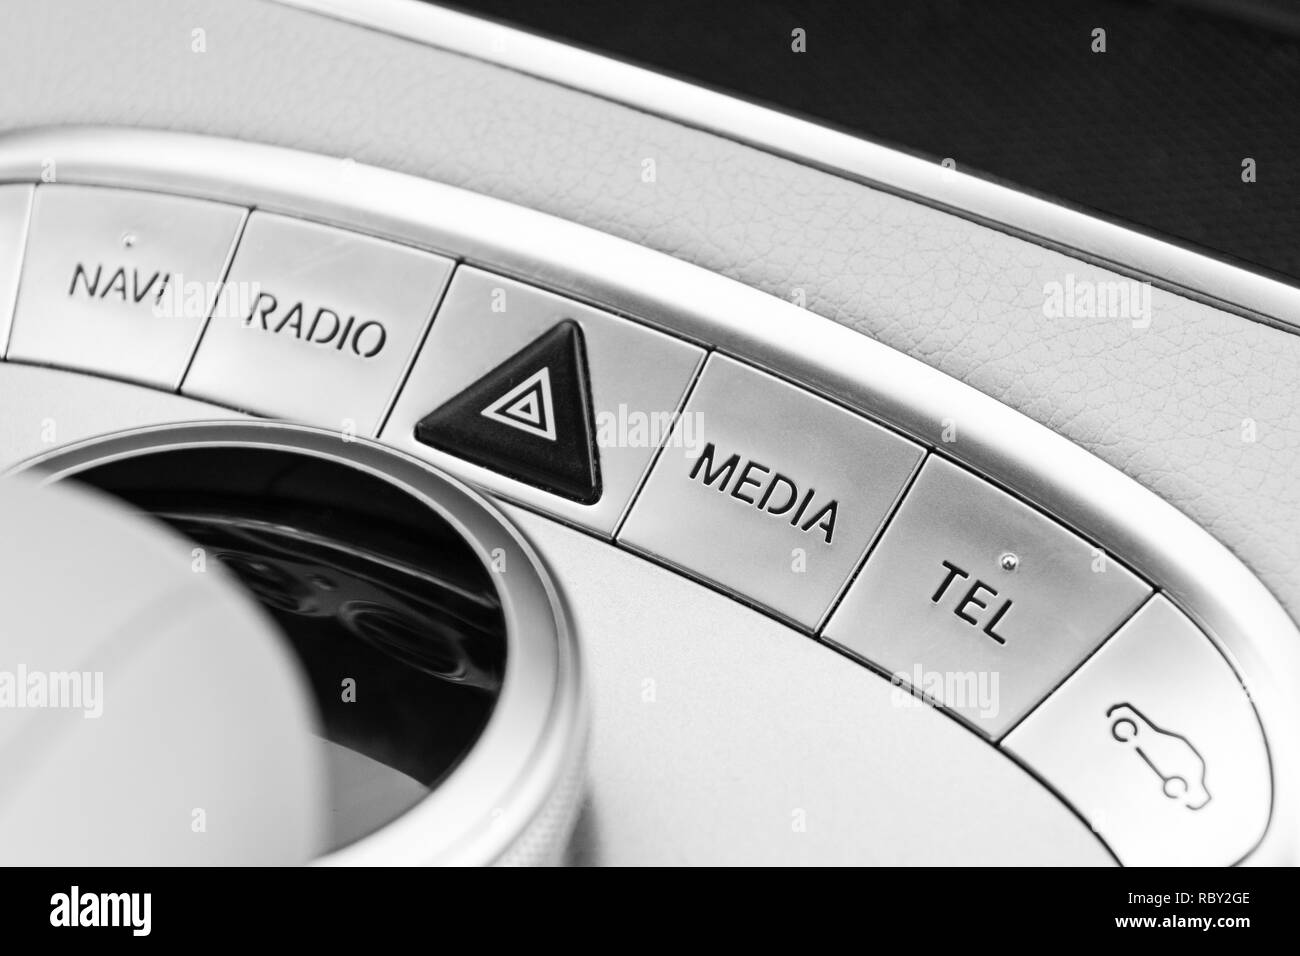 Media and navigation control buttons of a Modern car. Car interior details. White leather interior of the luxury modern car. Black and white - Stock Image